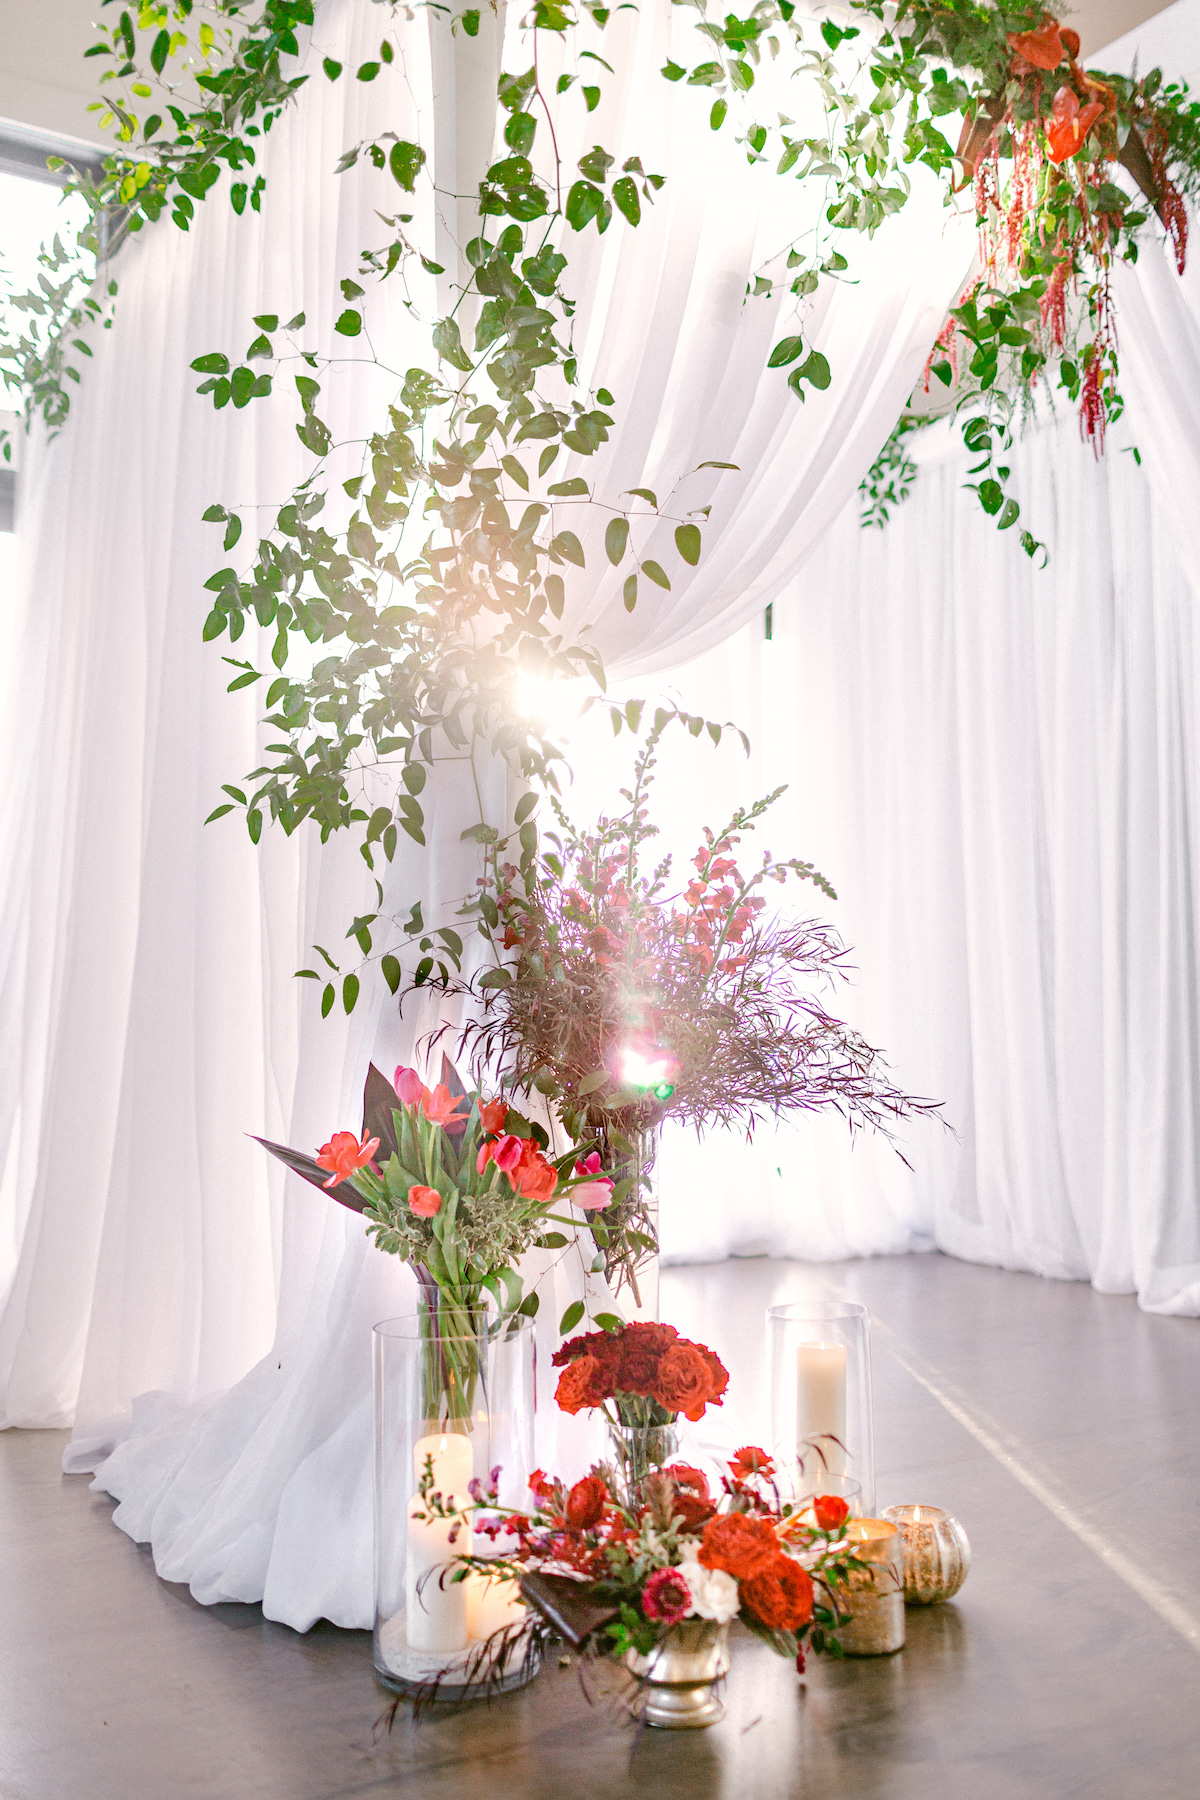 Winter red wedding decorations and ceremony flowers - 5th Fine Art Photography